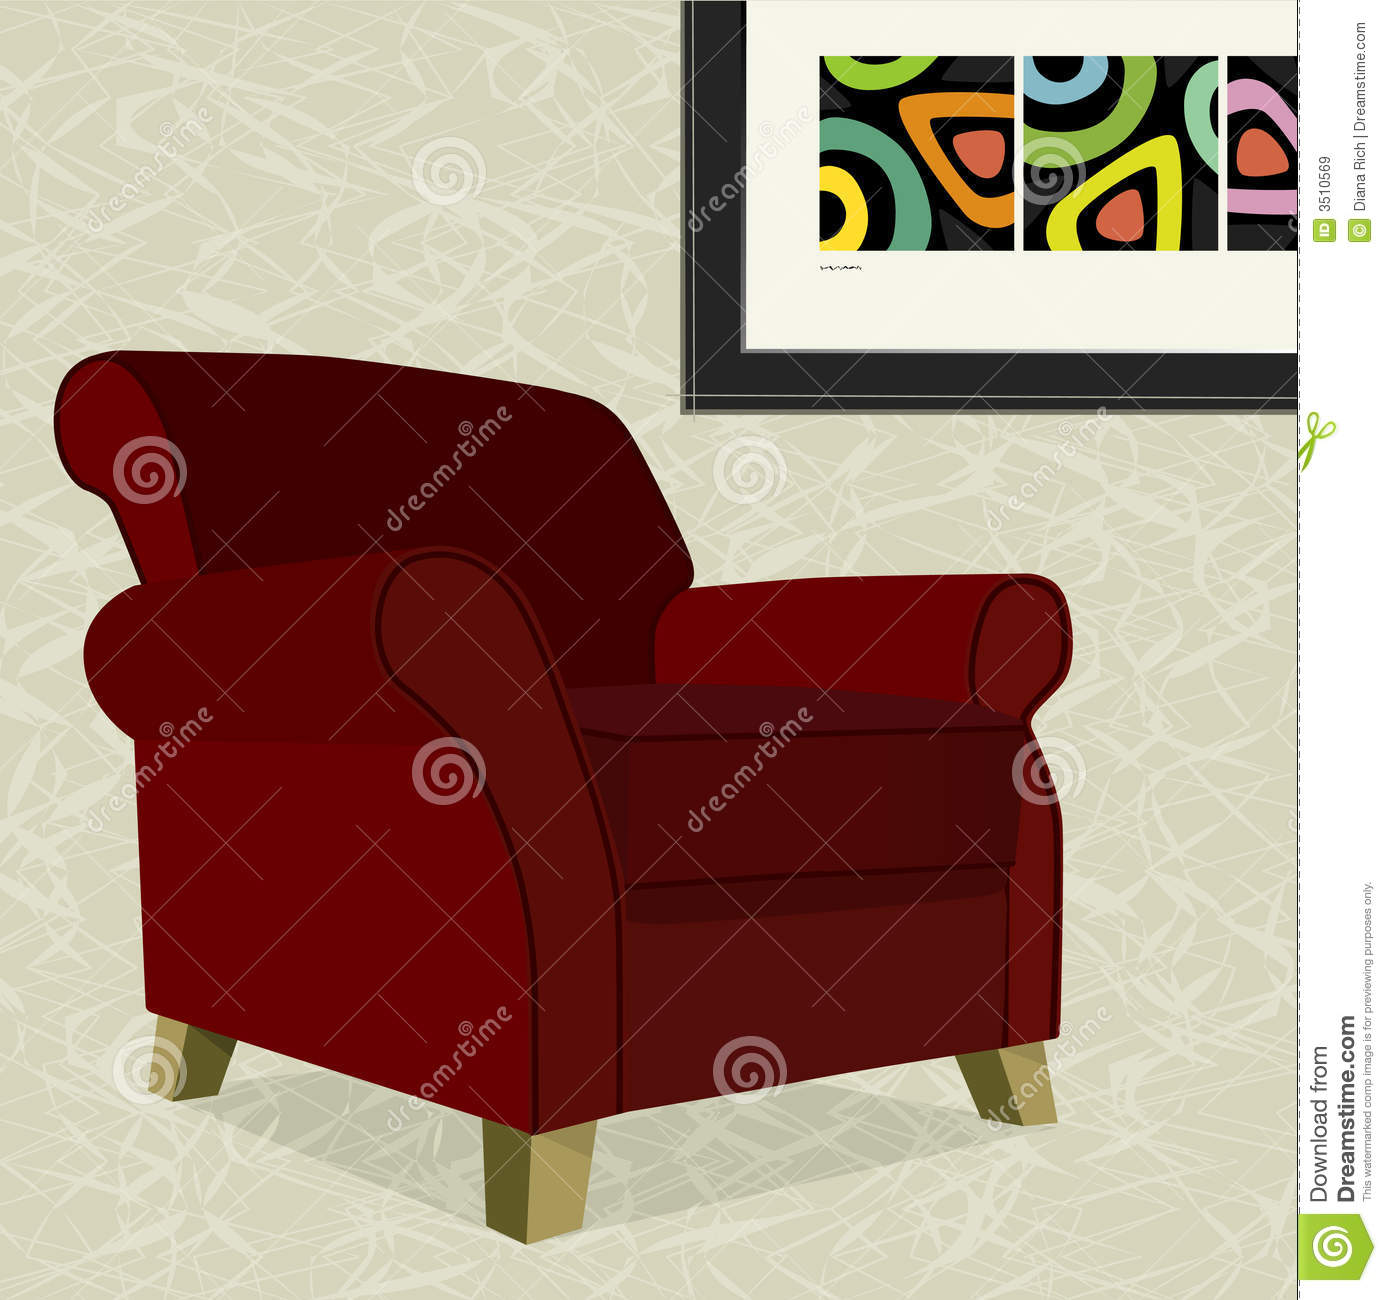 fauteuil rouge de velours images libres de droits image 3510569. Black Bedroom Furniture Sets. Home Design Ideas